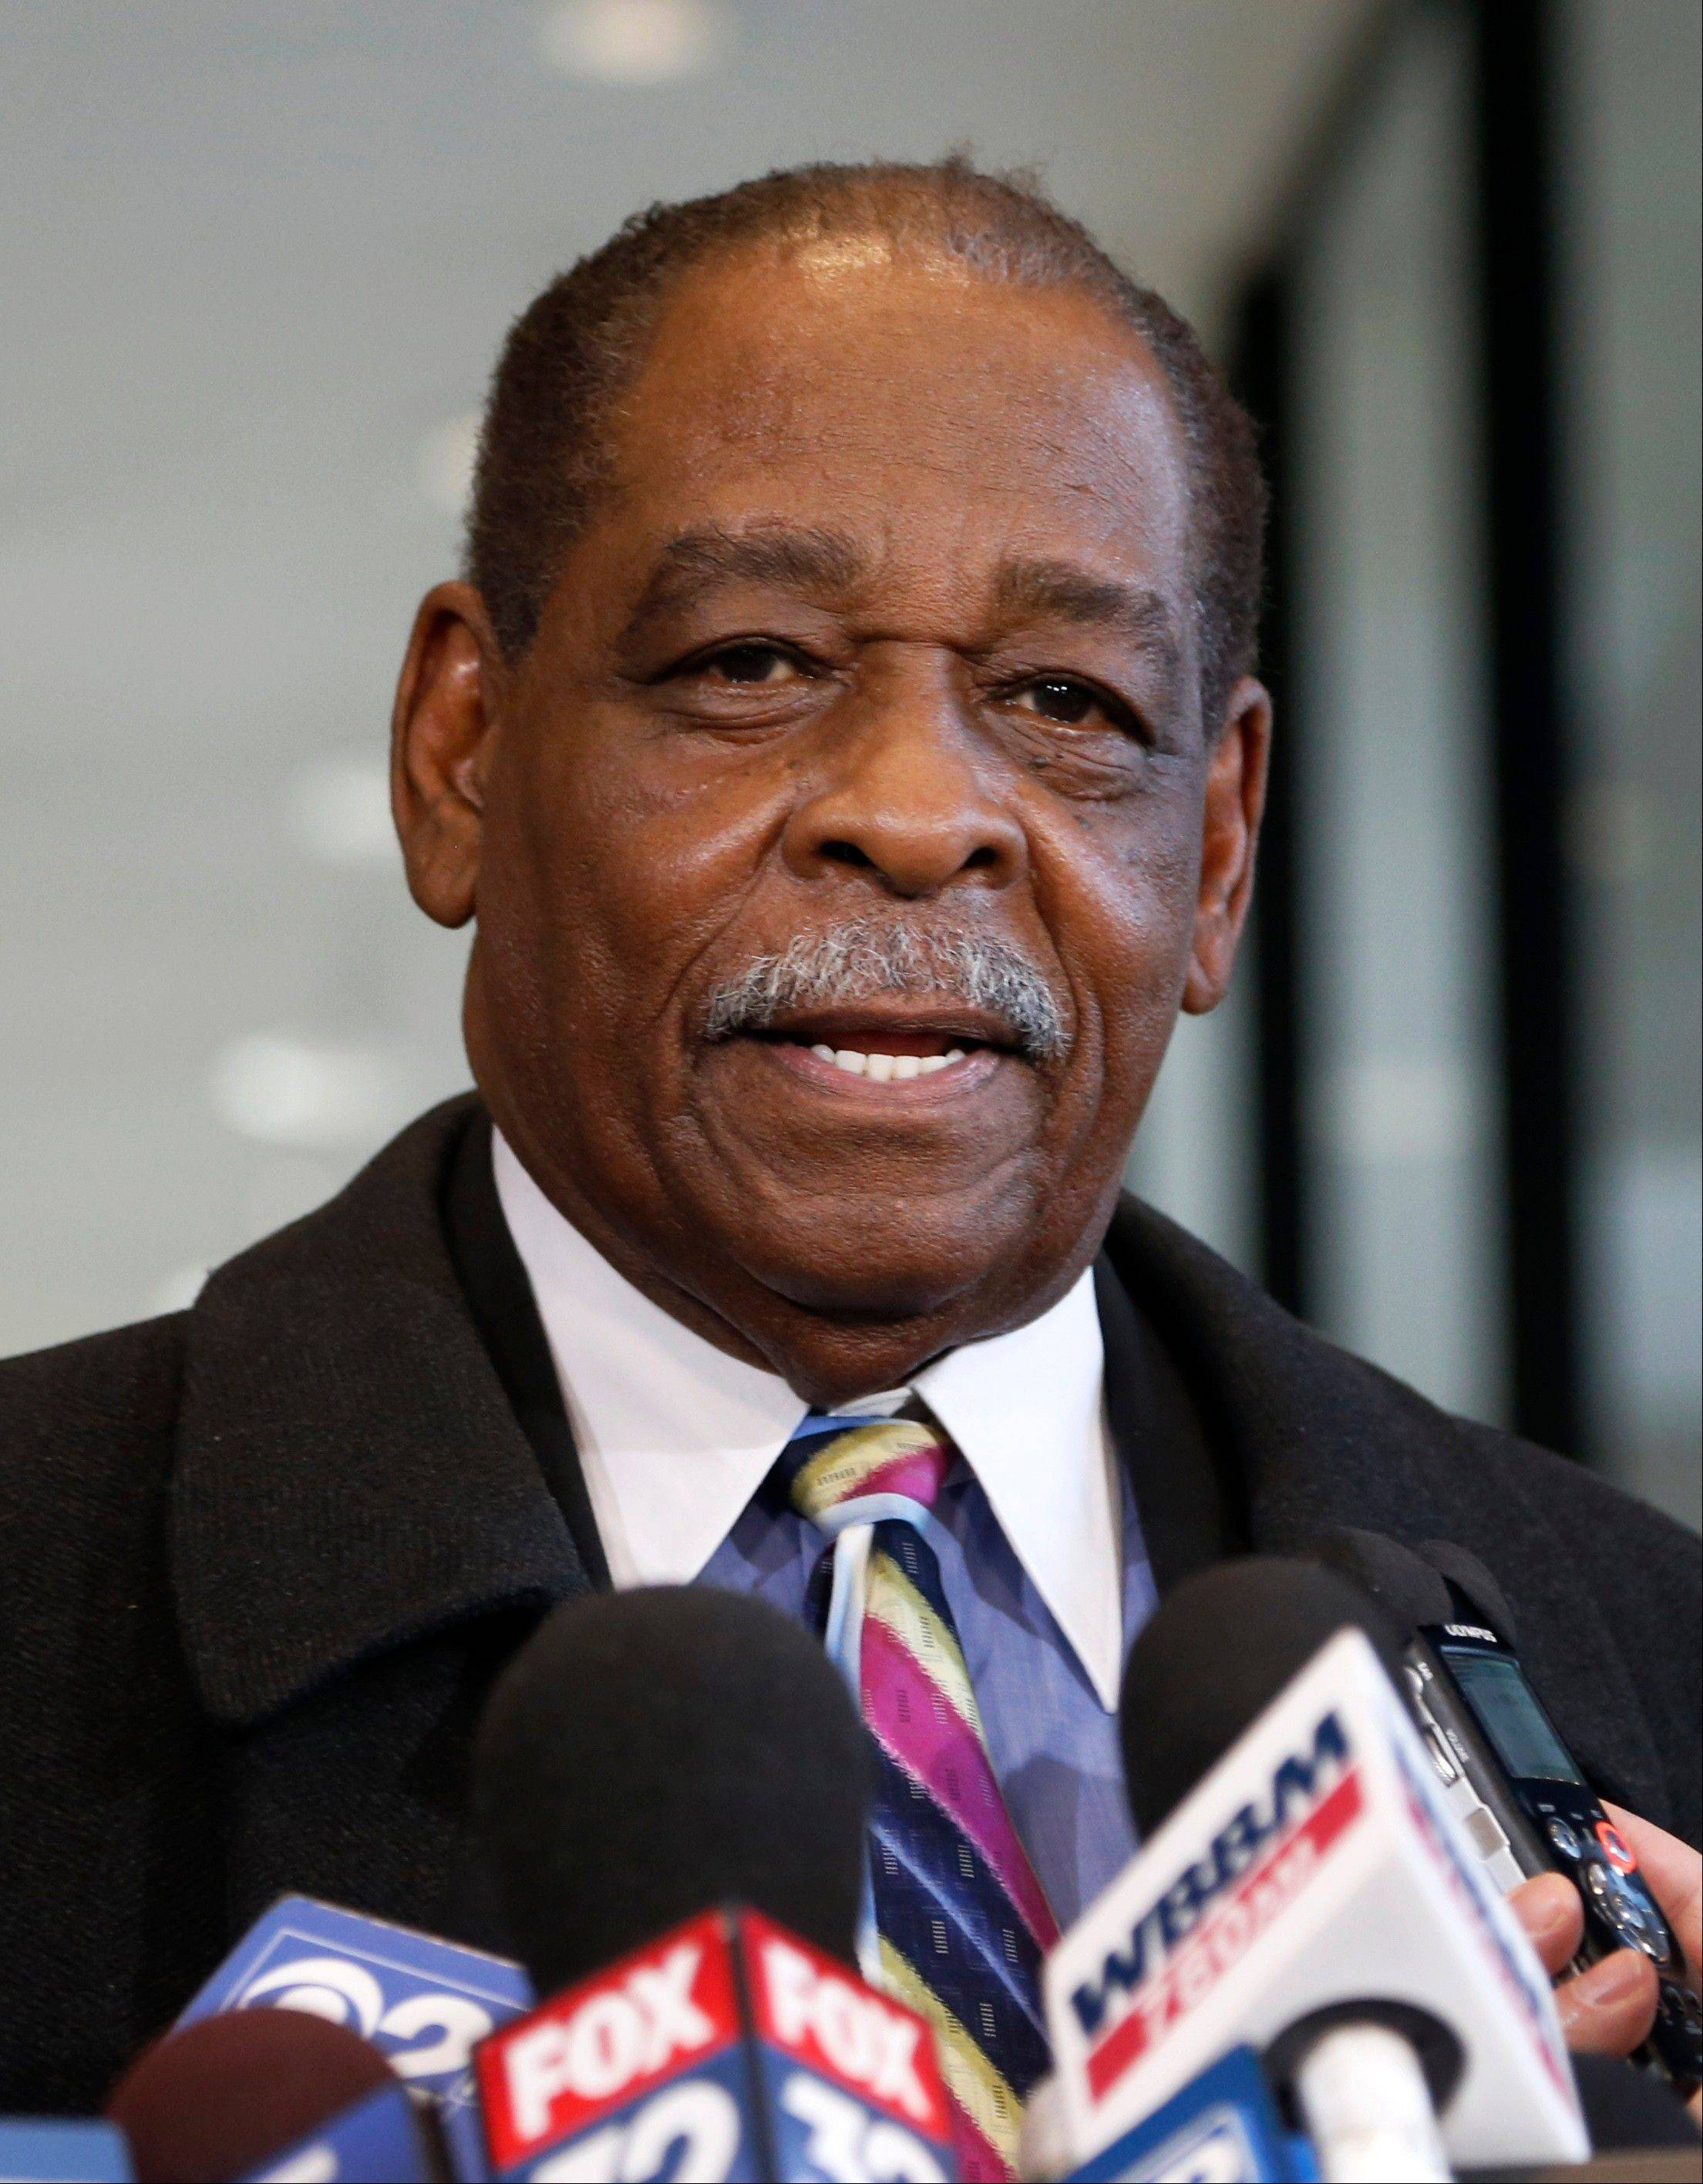 Cook County Commissioner William Beavers talks to reporters Thursday in Chicago after he was convicted of tax evasion for not declaring campaign cash he gambled away on slot machines as income.